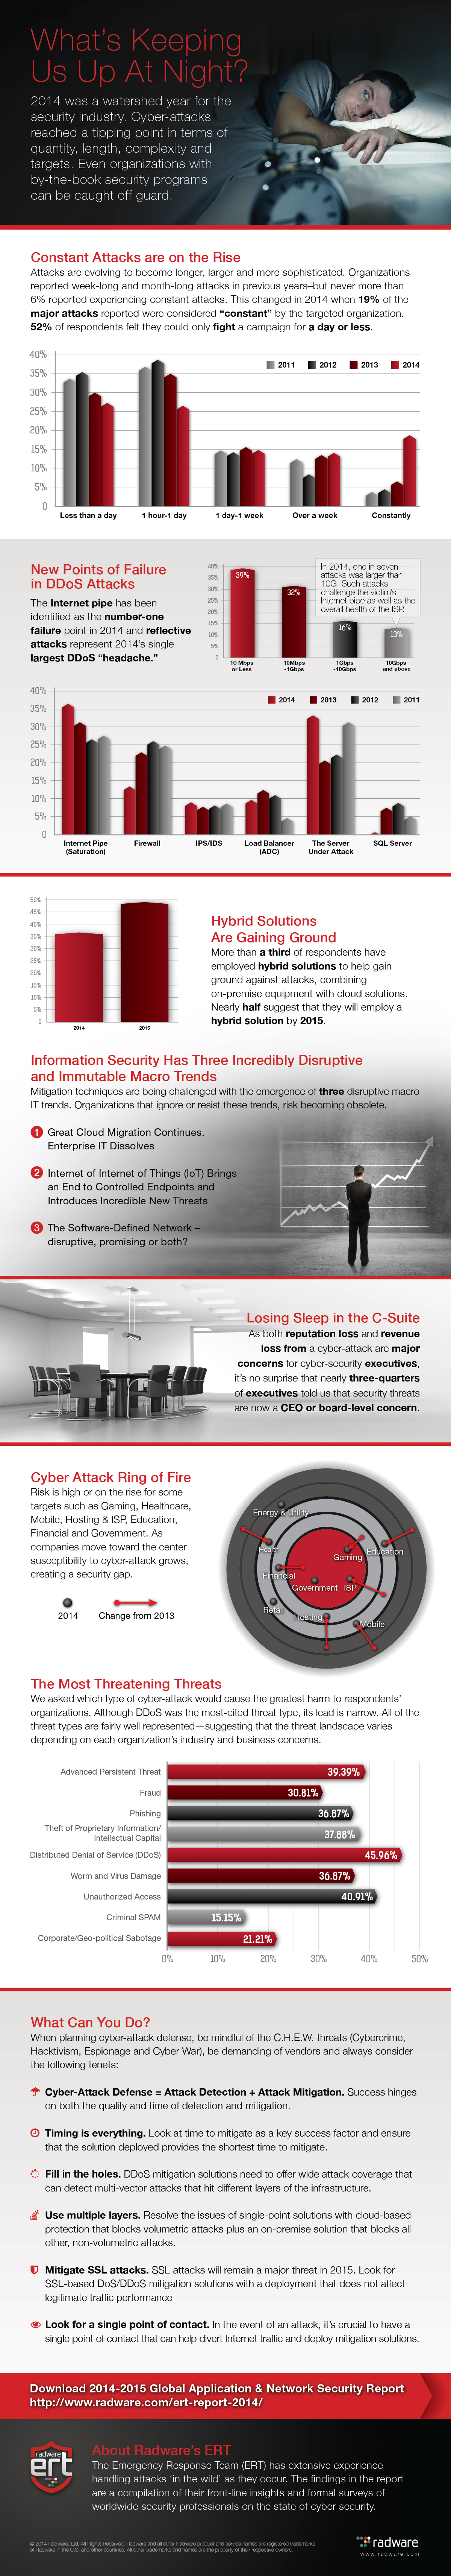 2014 - 2015 Global Application & Network Security Infographic